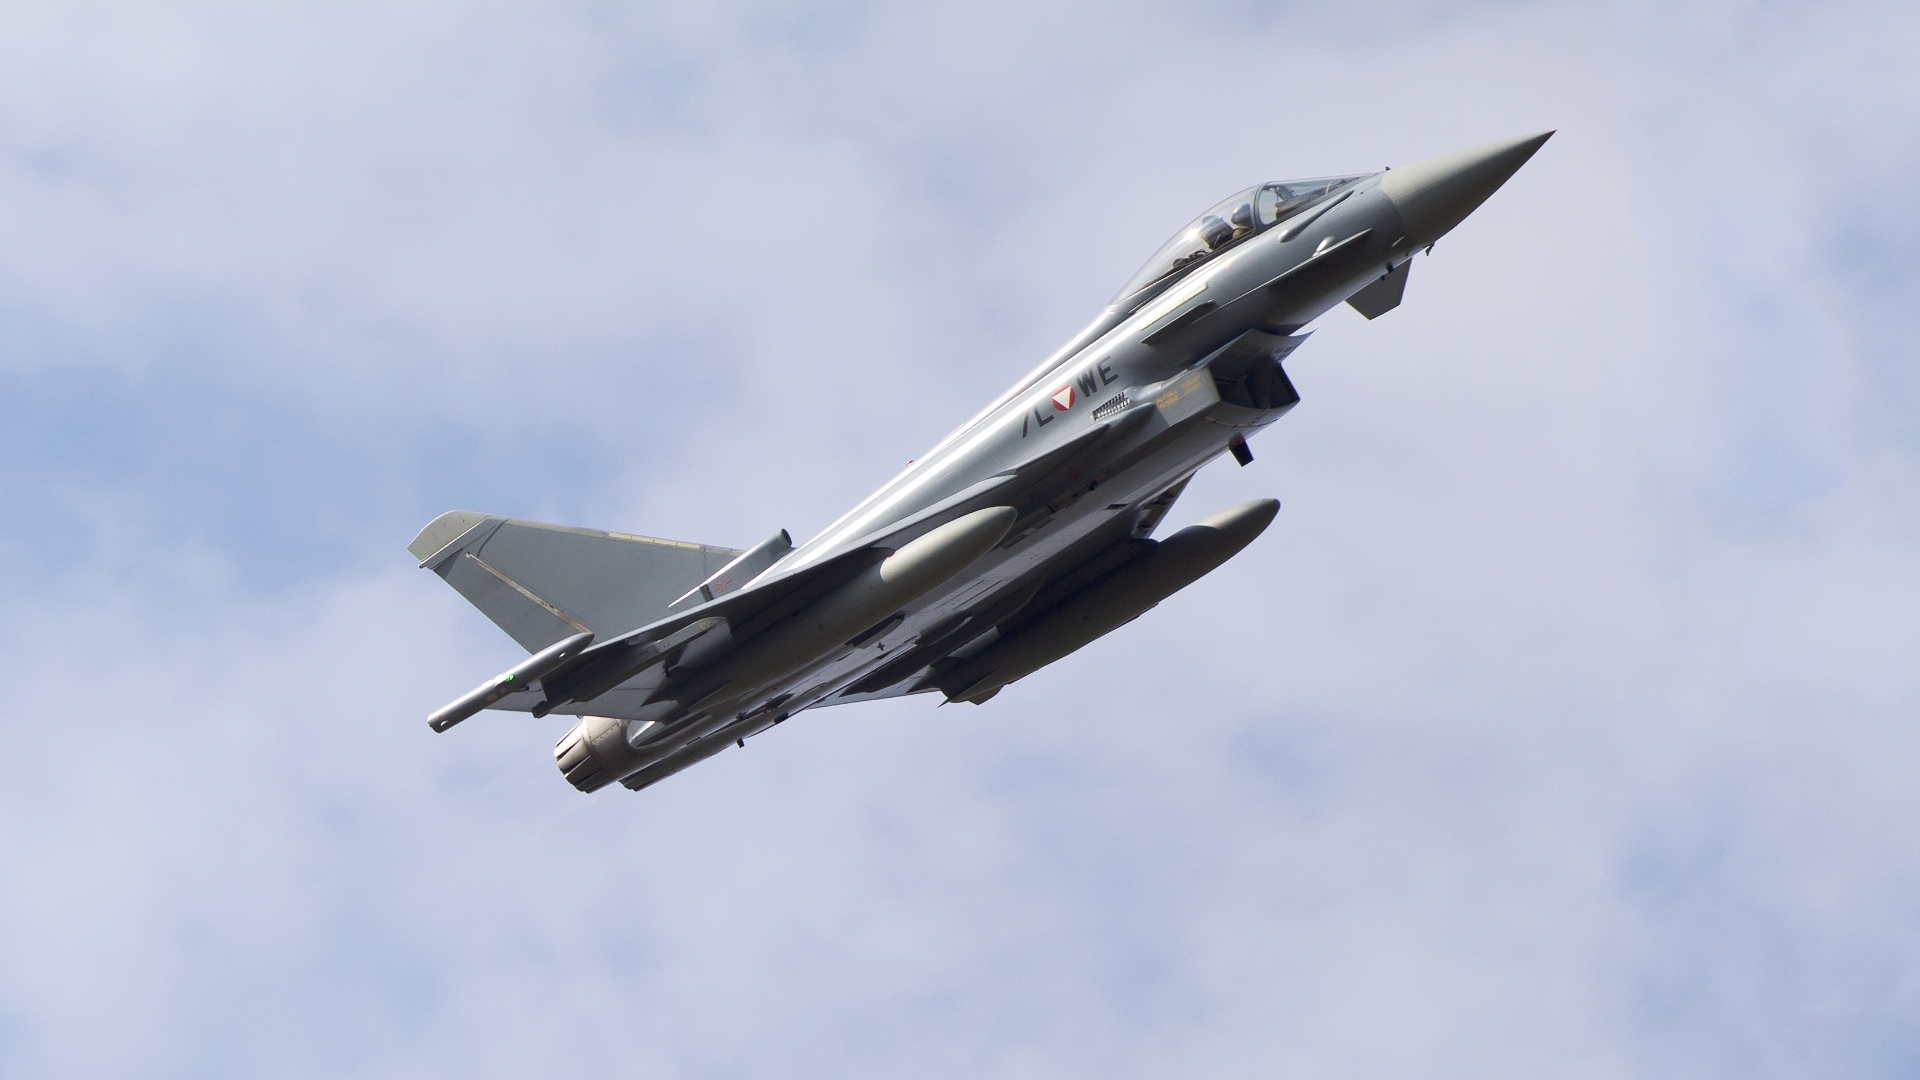 eurofighter typhoon wallpaper hd 43925